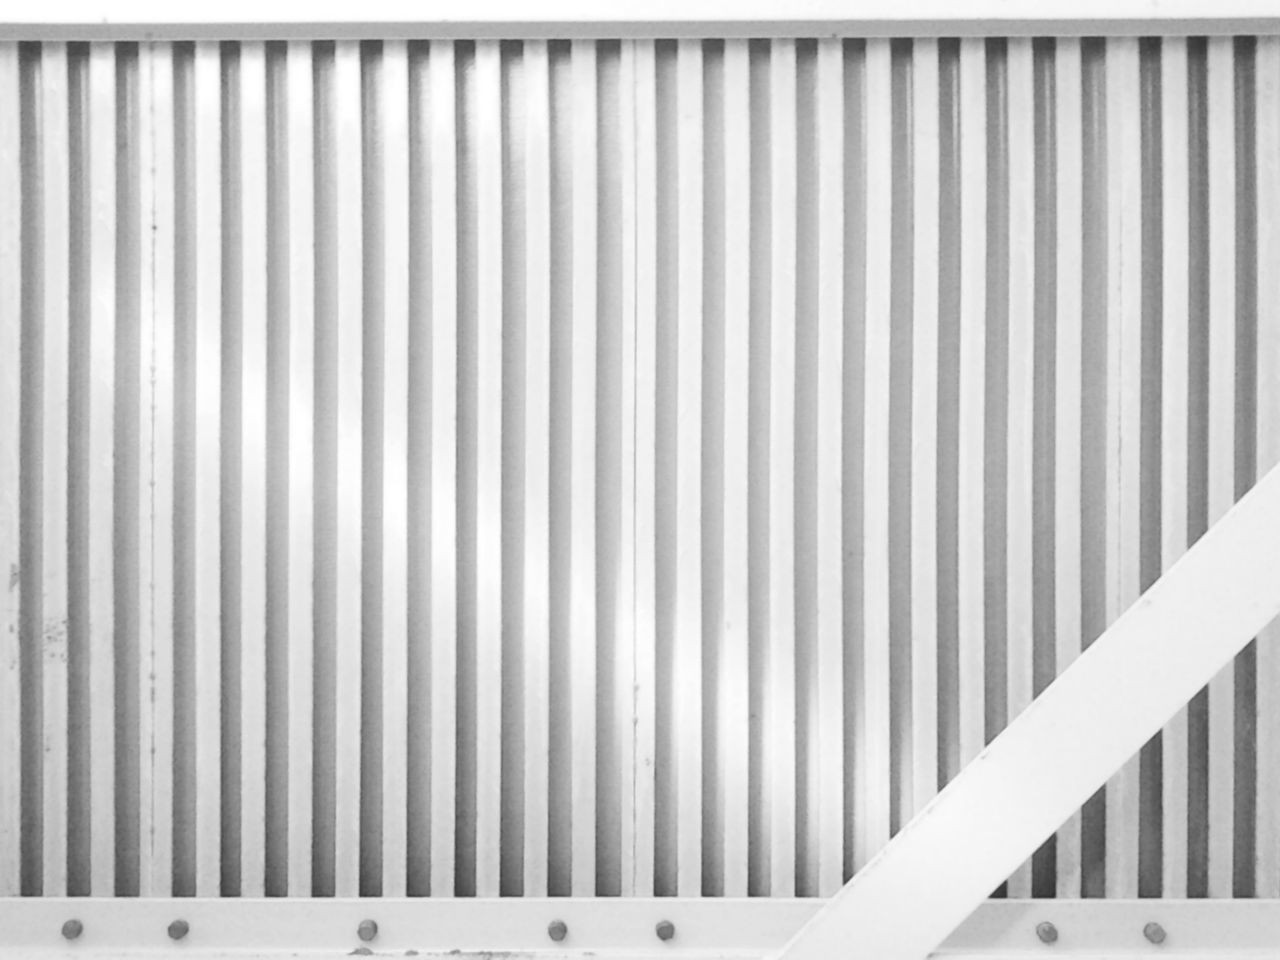 Neatly twisted White White Background WhiteCollection Metal Metallic Dutchstyle Metalwork Stripes Pattern Pattern Everywhere Pastel Power Under The Bridge EyeEm Gallery Mobilephotography Galaxys3 Nieuwegein